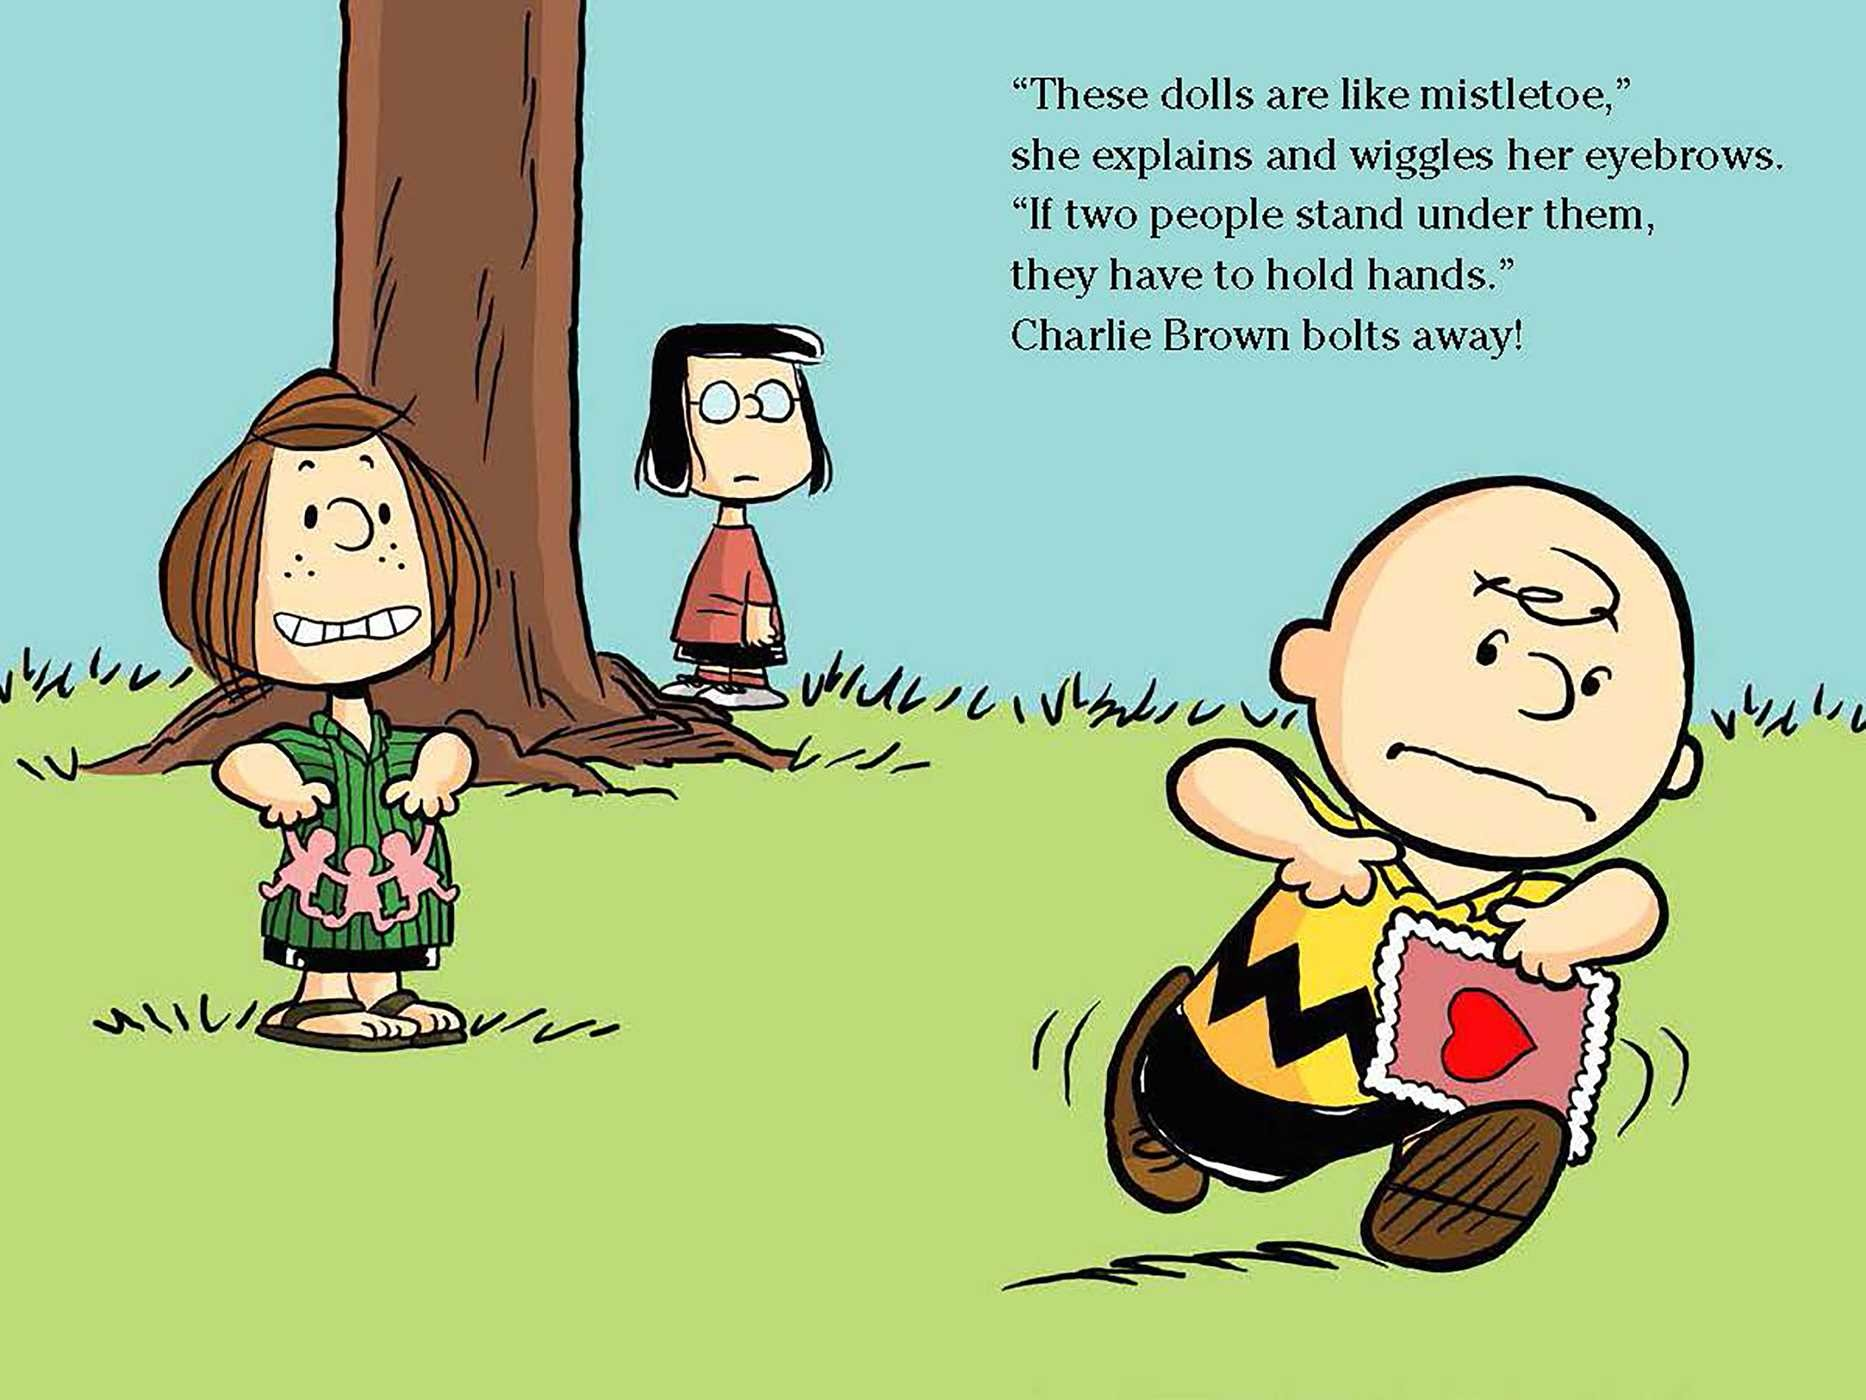 Happy valentines day charlie brown 9781481441339.in06